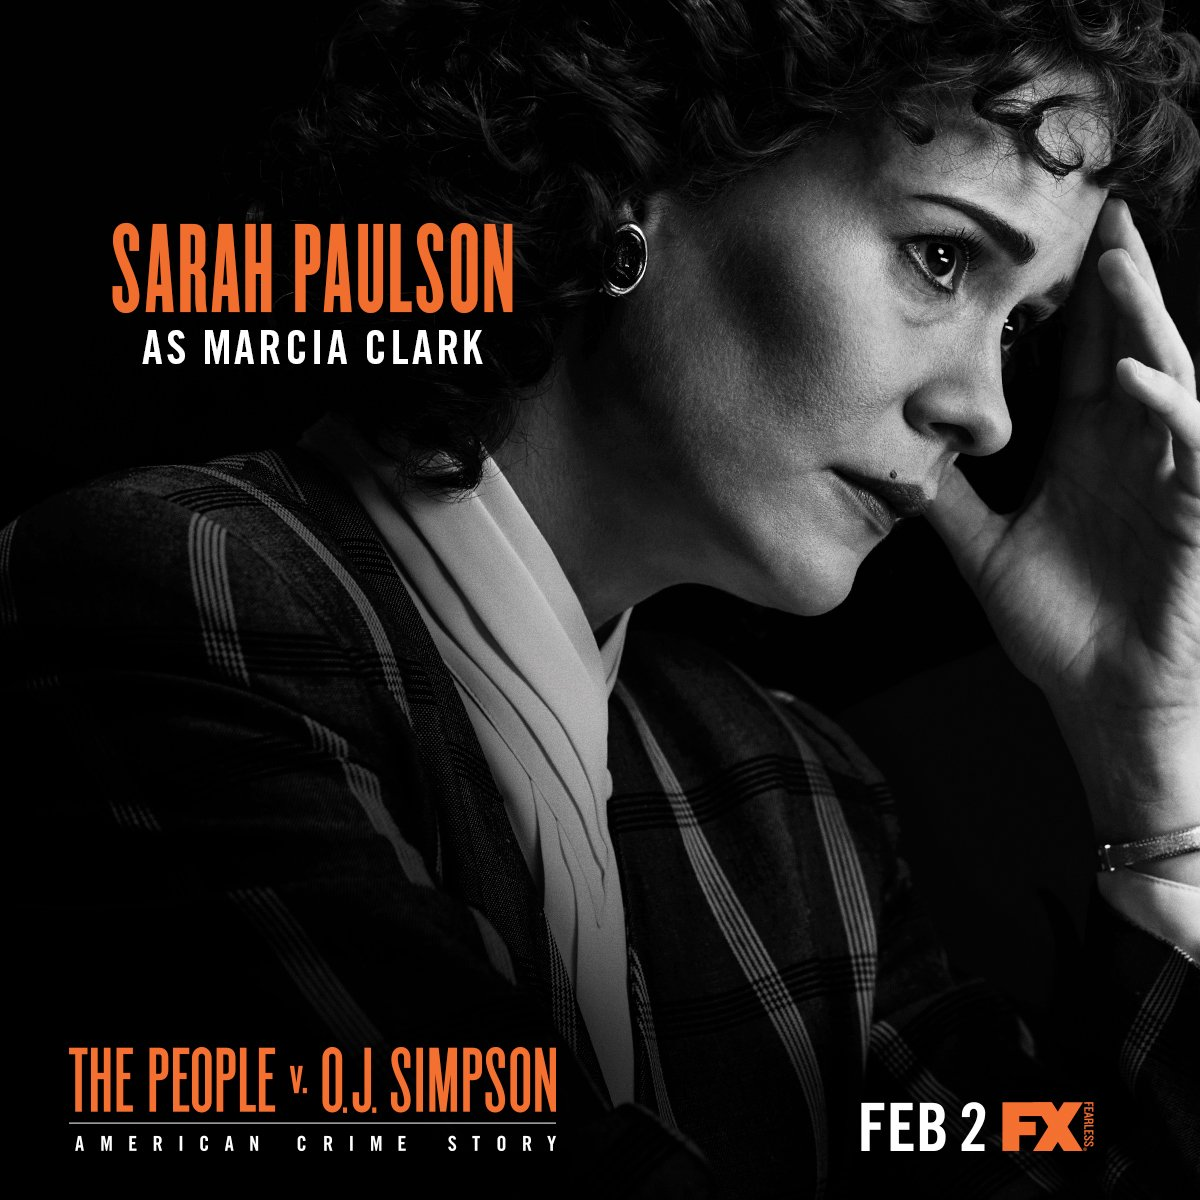 She saw it as an open and shut case. The jury saw something else. The trial of the century begins 2/2 on FX. #ACSFX https://t.co/JjIef1HZrj